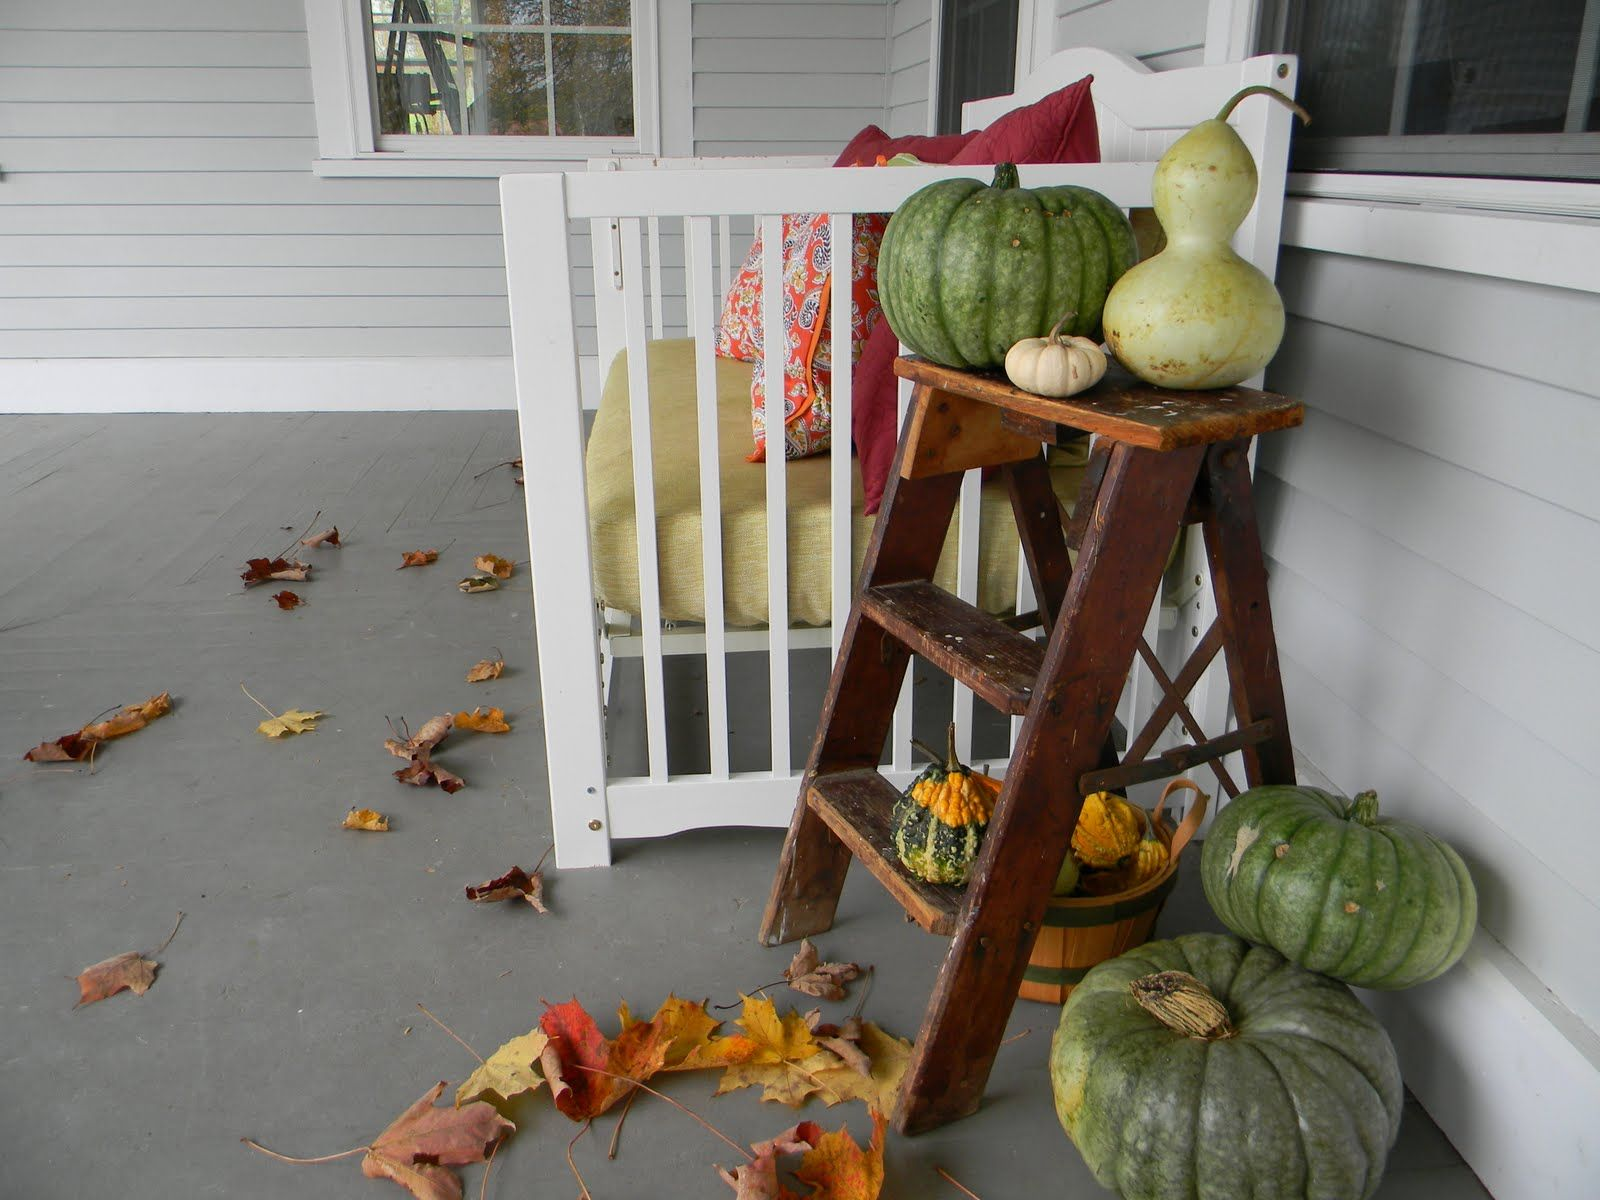 Porchdaybedjpg pixels for the home pinterest